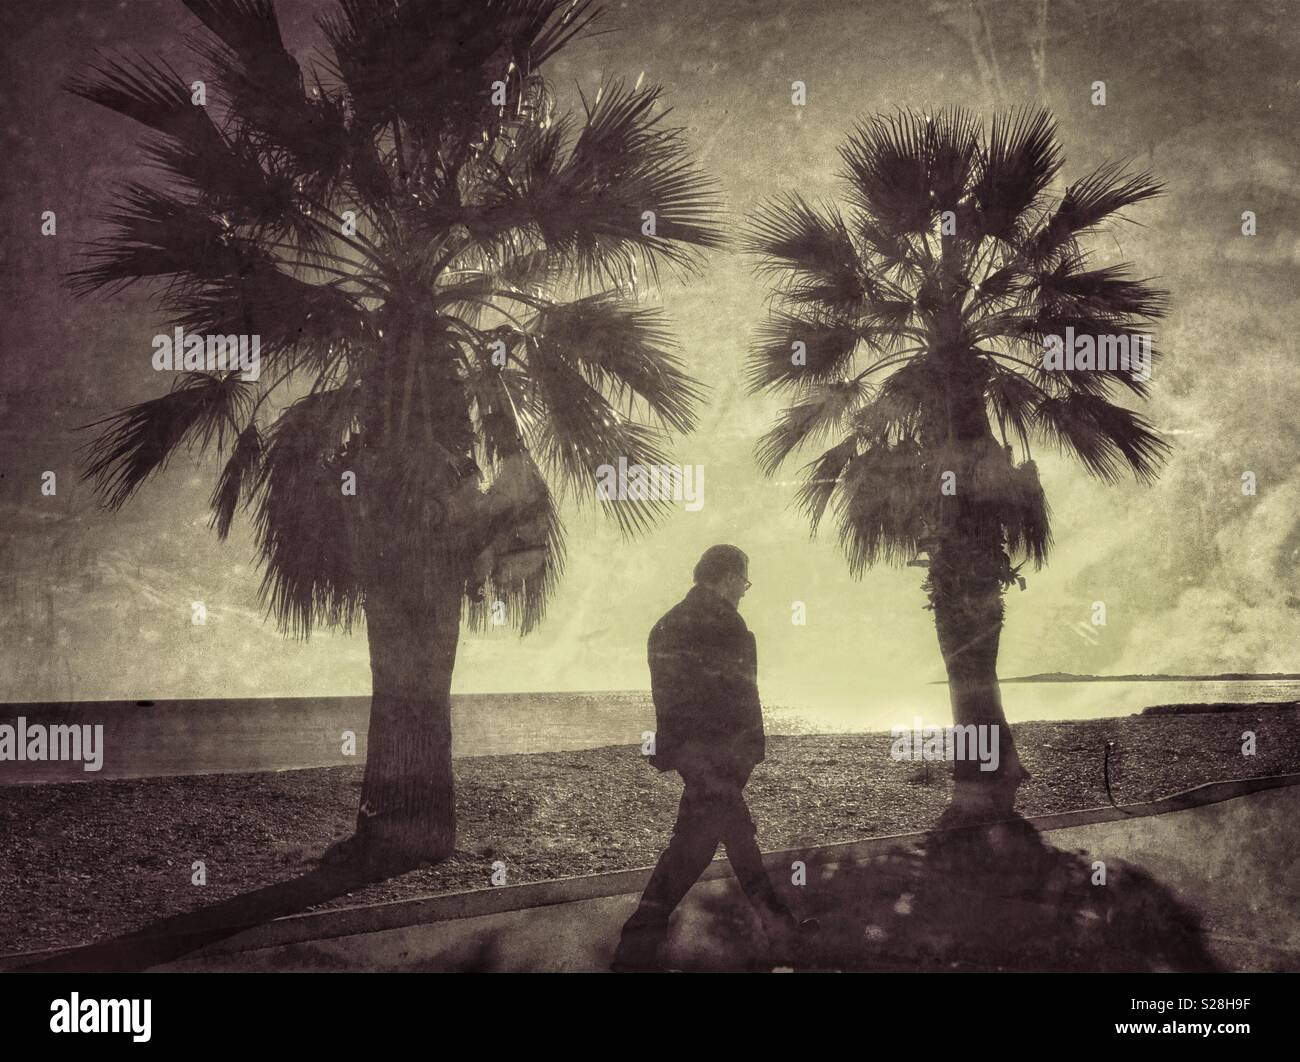 A lone person walks along a path and is framed by 2 palm trees. An image to illustrate depression, isolation or bygone days. Photo Credit - © COLIN HOSKINS. - Stock Image